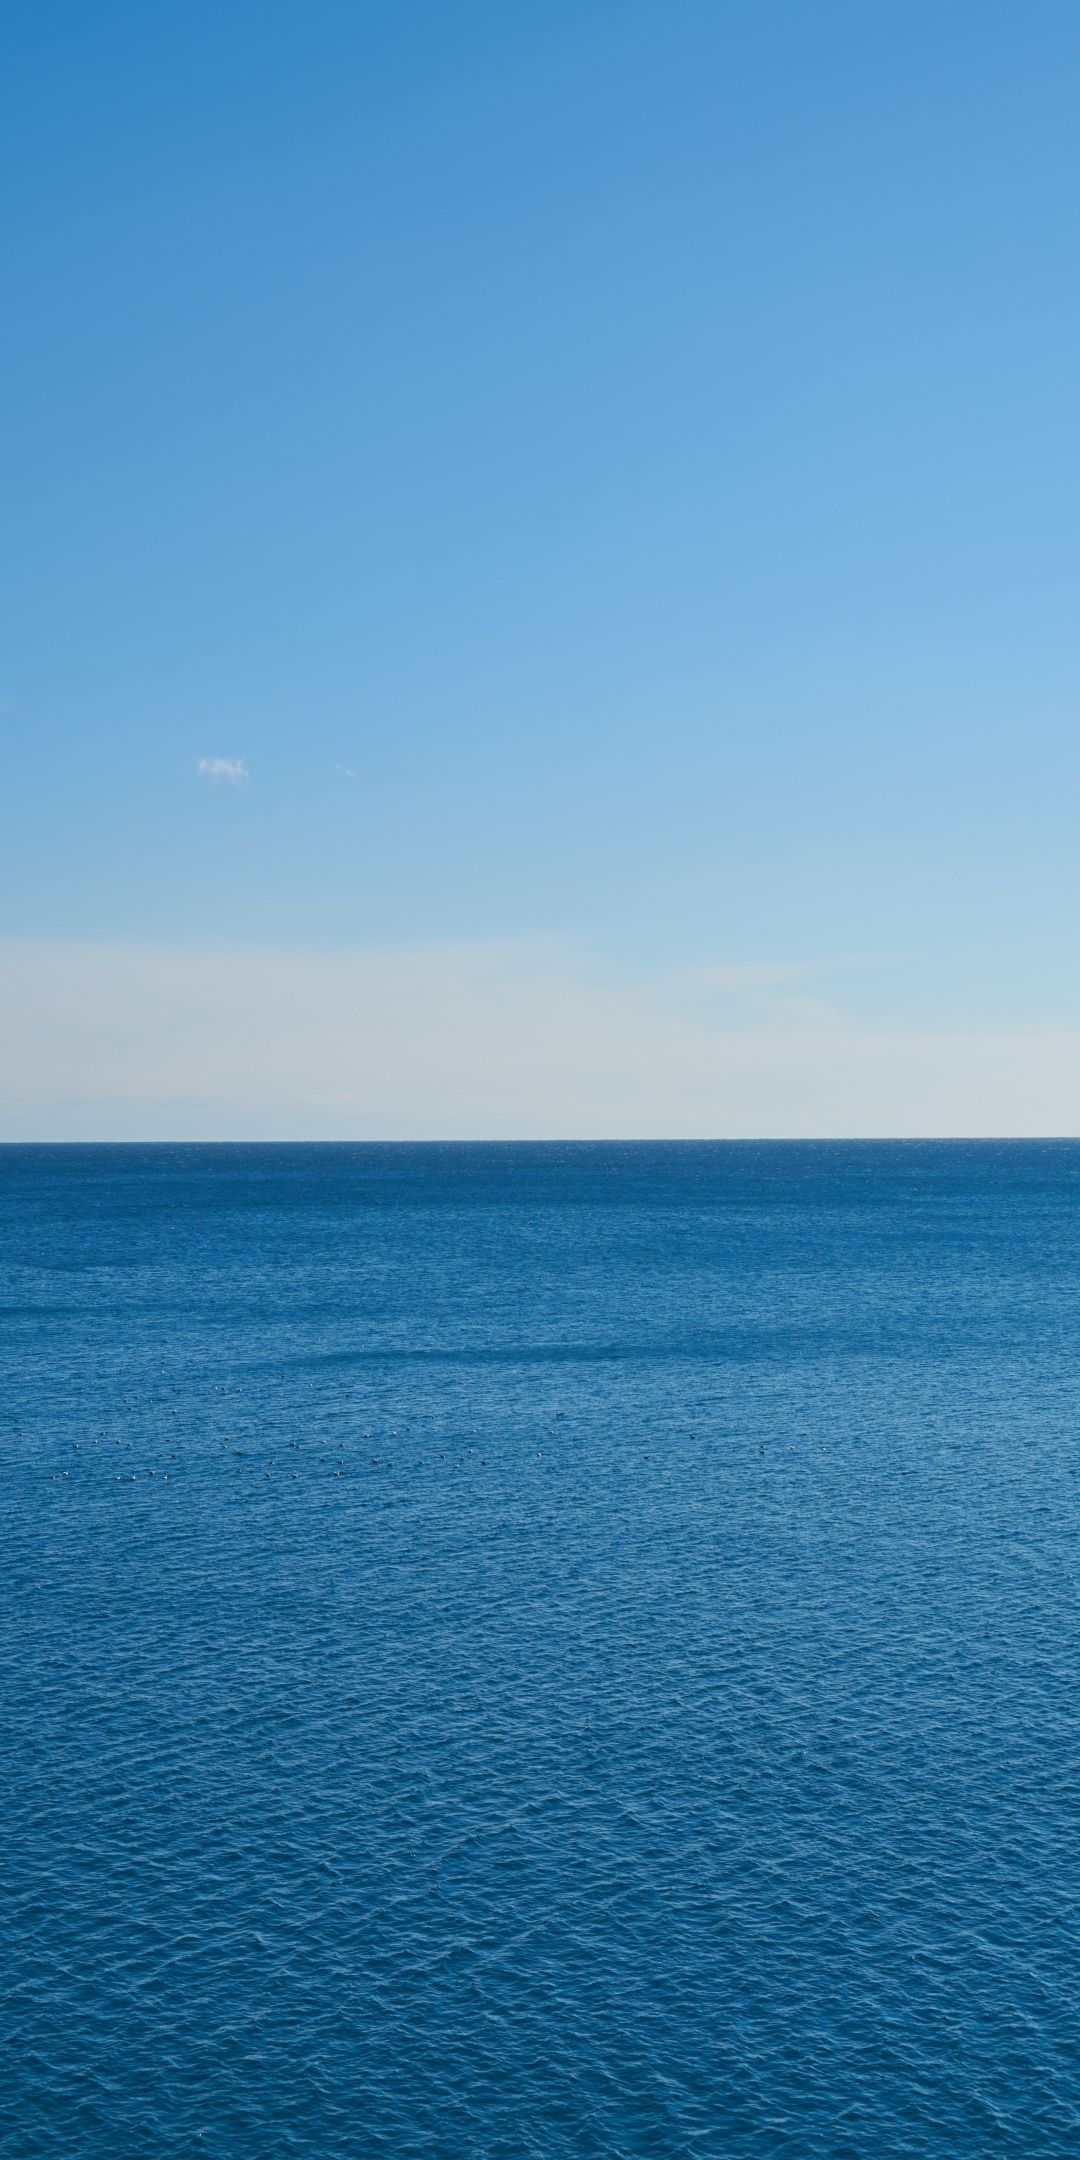 Deep Blue Sea Nature 1080x2160 Wallpaper Com Imagens